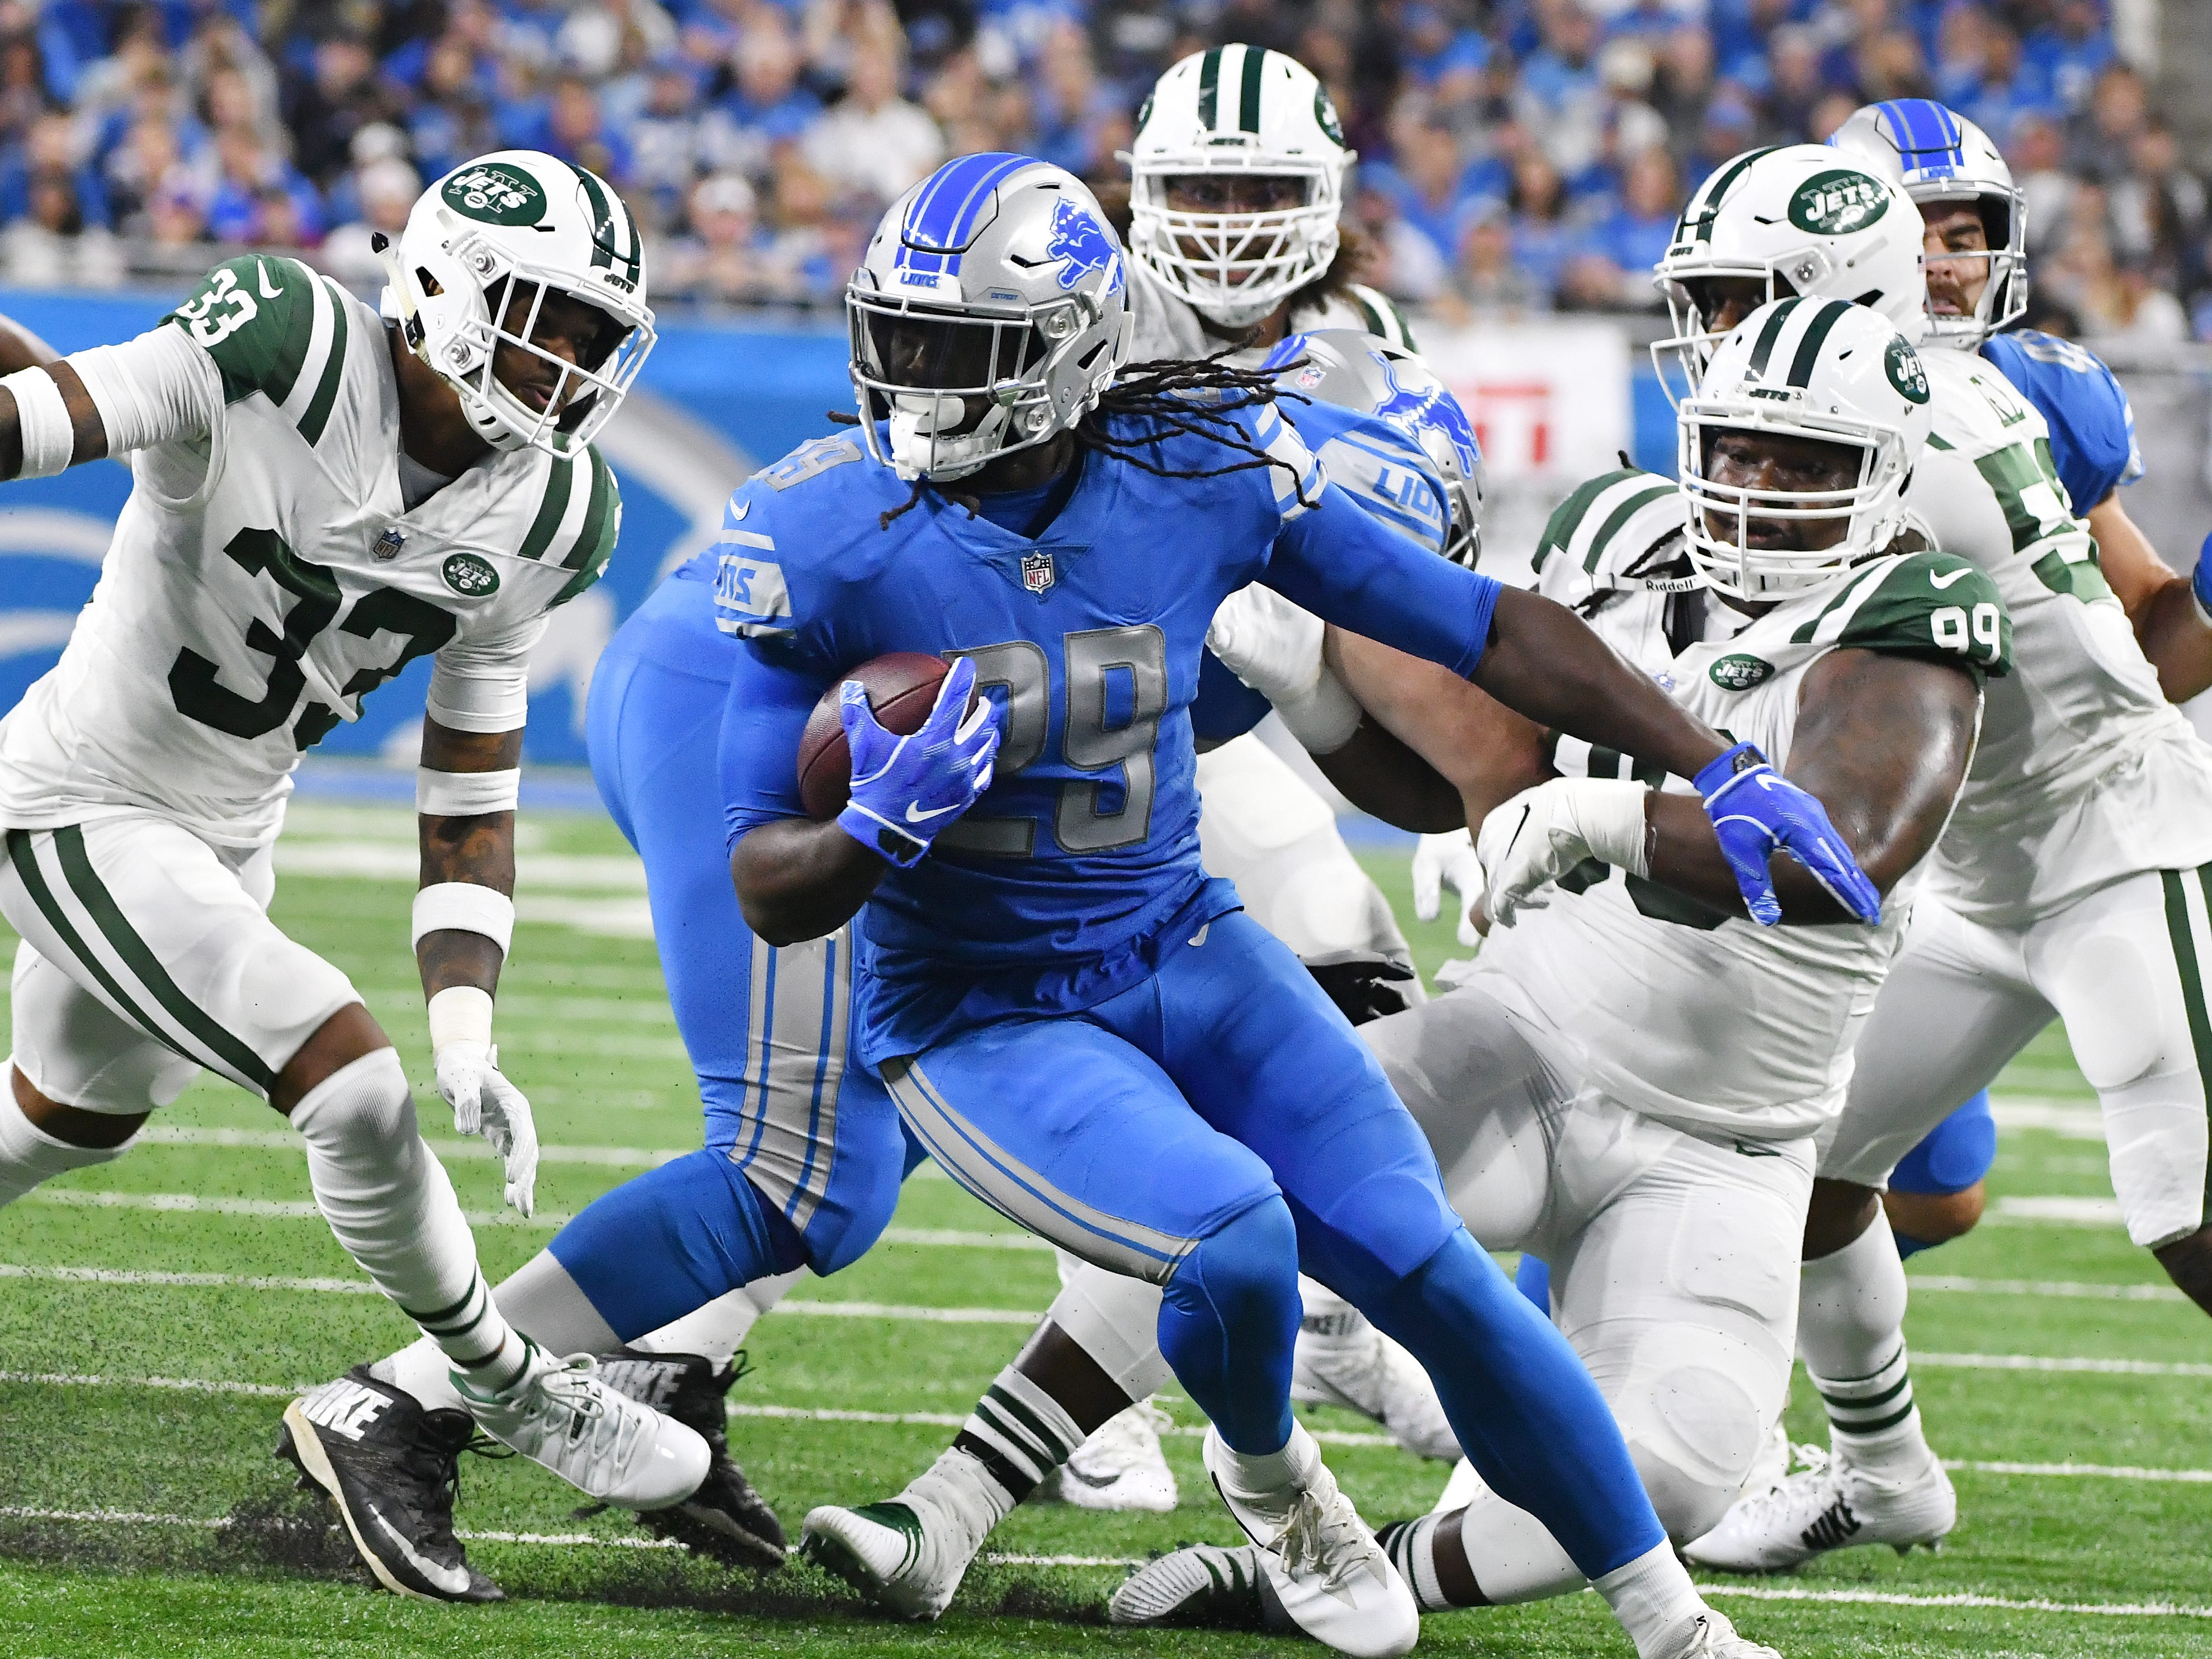 RB LeGarrette Blount: Blount has been disappointing in his first season with the Lions. The starter to begin the year, and current second-fiddle in the rotation, he hasn't brought his career-long consistency with him to Detroit. While he's been above-average in short-yardage situations – where the Lions desperately had a need – the down-to-down vision and reliance on elusiveness over power on his rare runs into the second level have left him averaging 2.7 yards per carry. Grade: D+